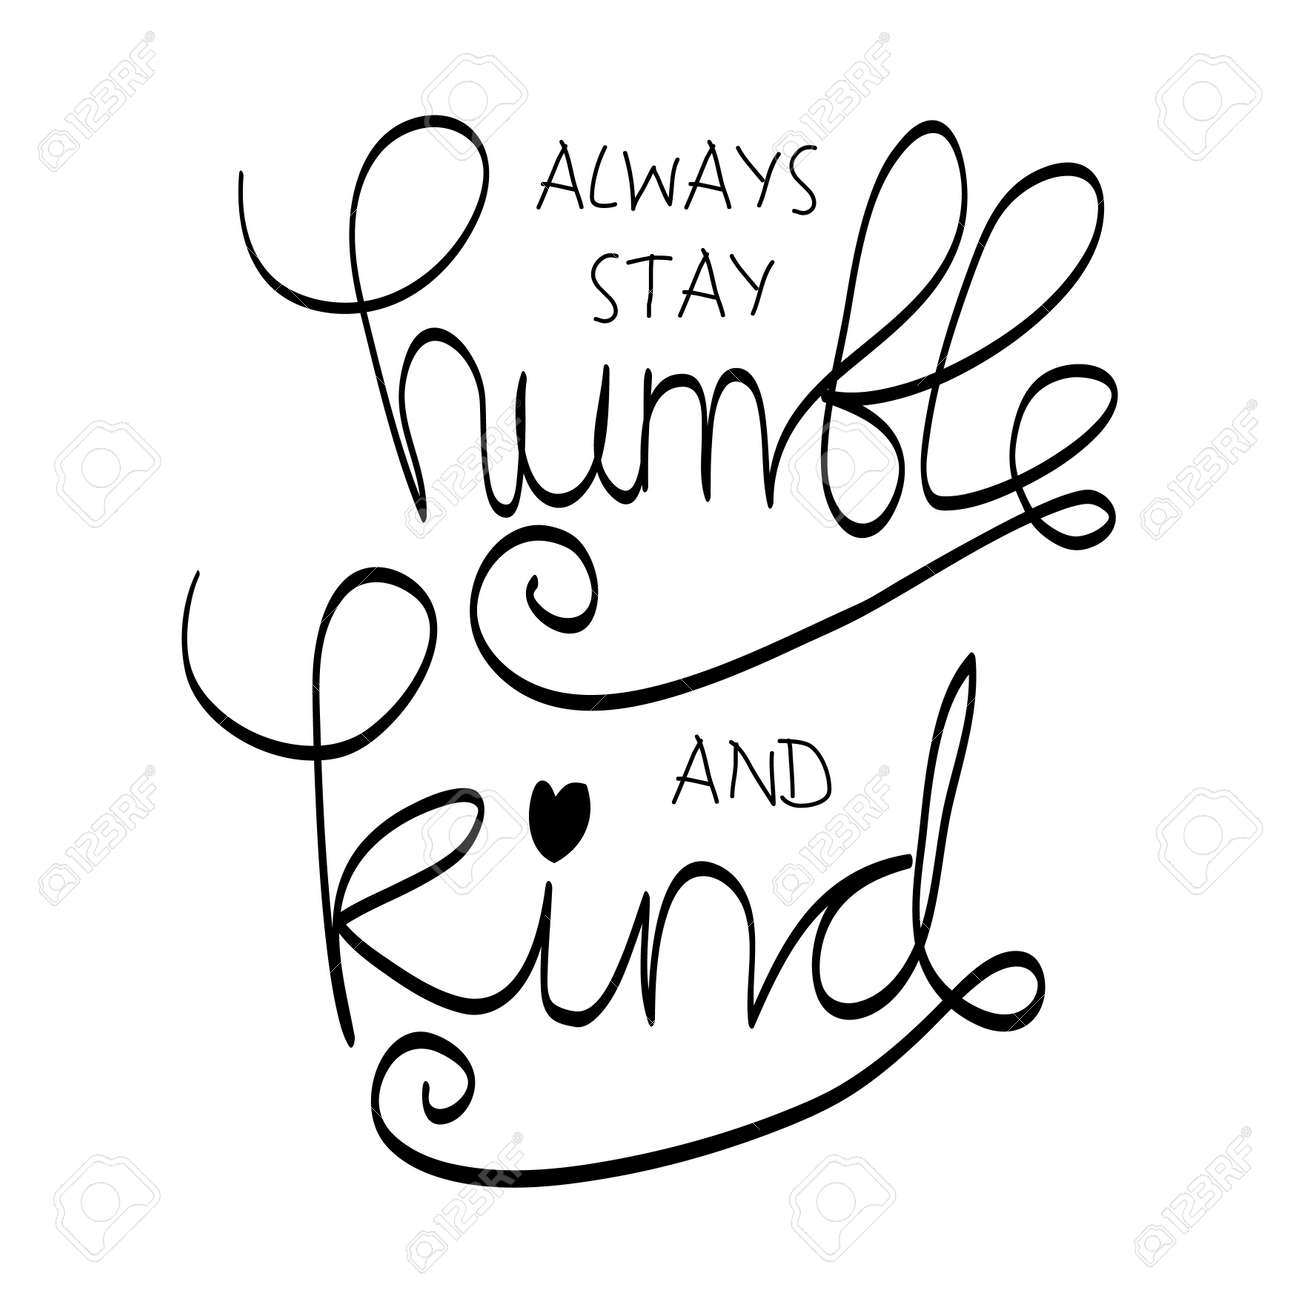 Always Stay Humble And Kind Motivational Quote Royalty Free